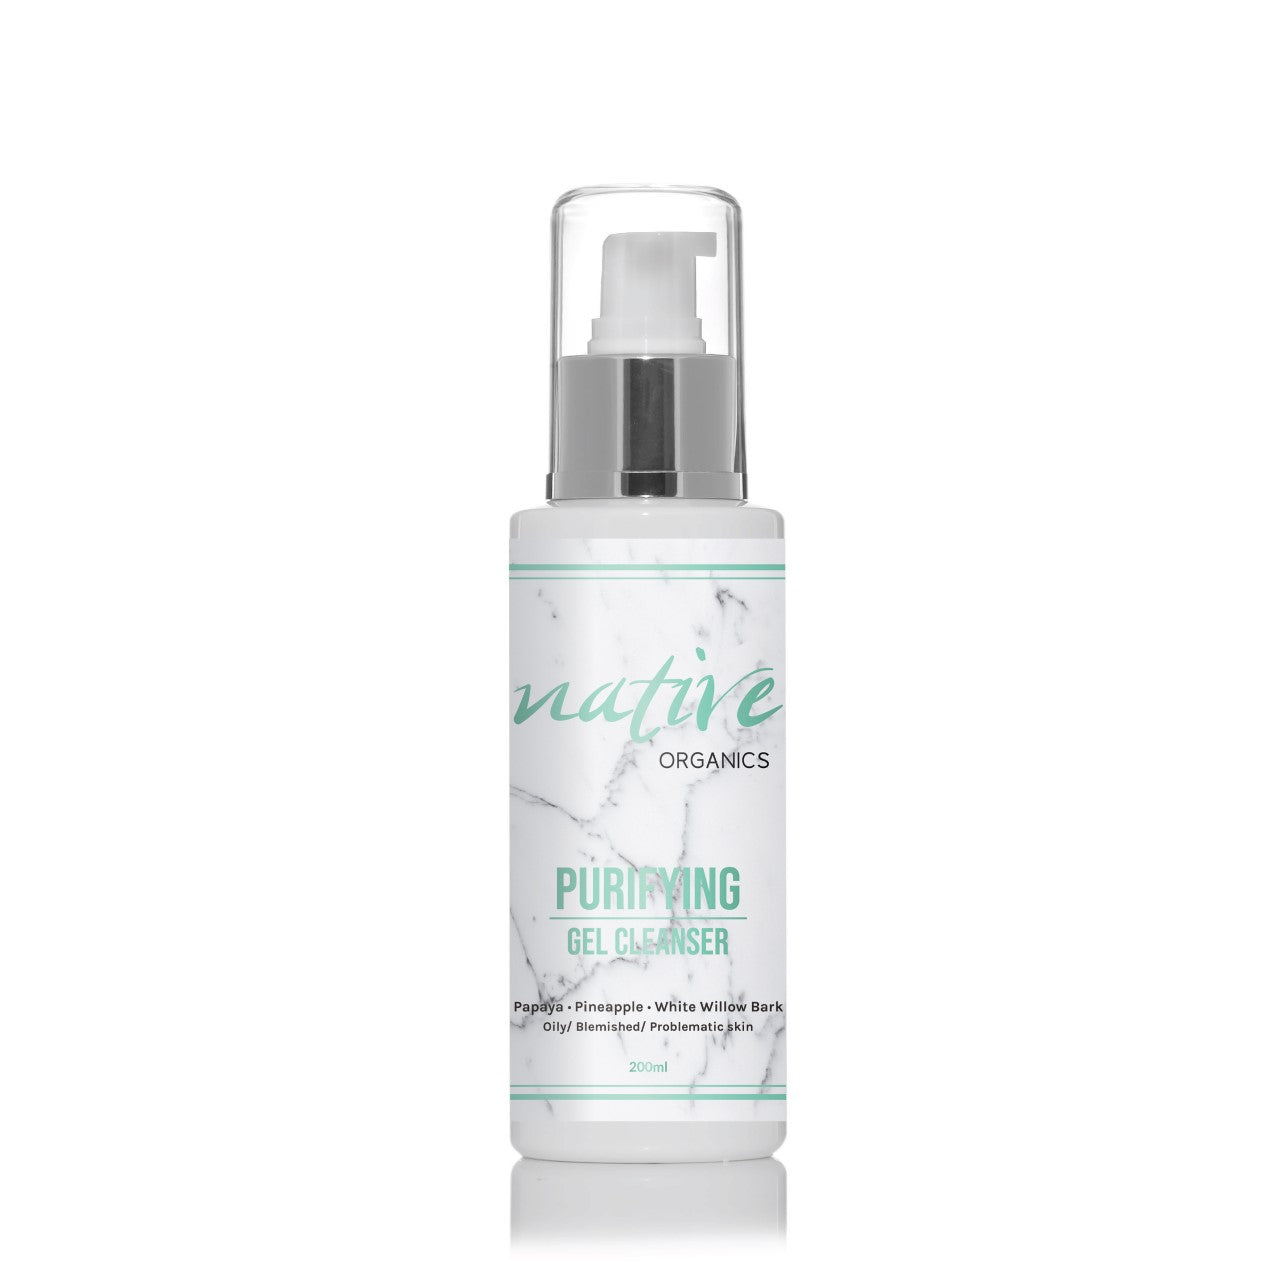 Purifying Gel Cleanser-200ml